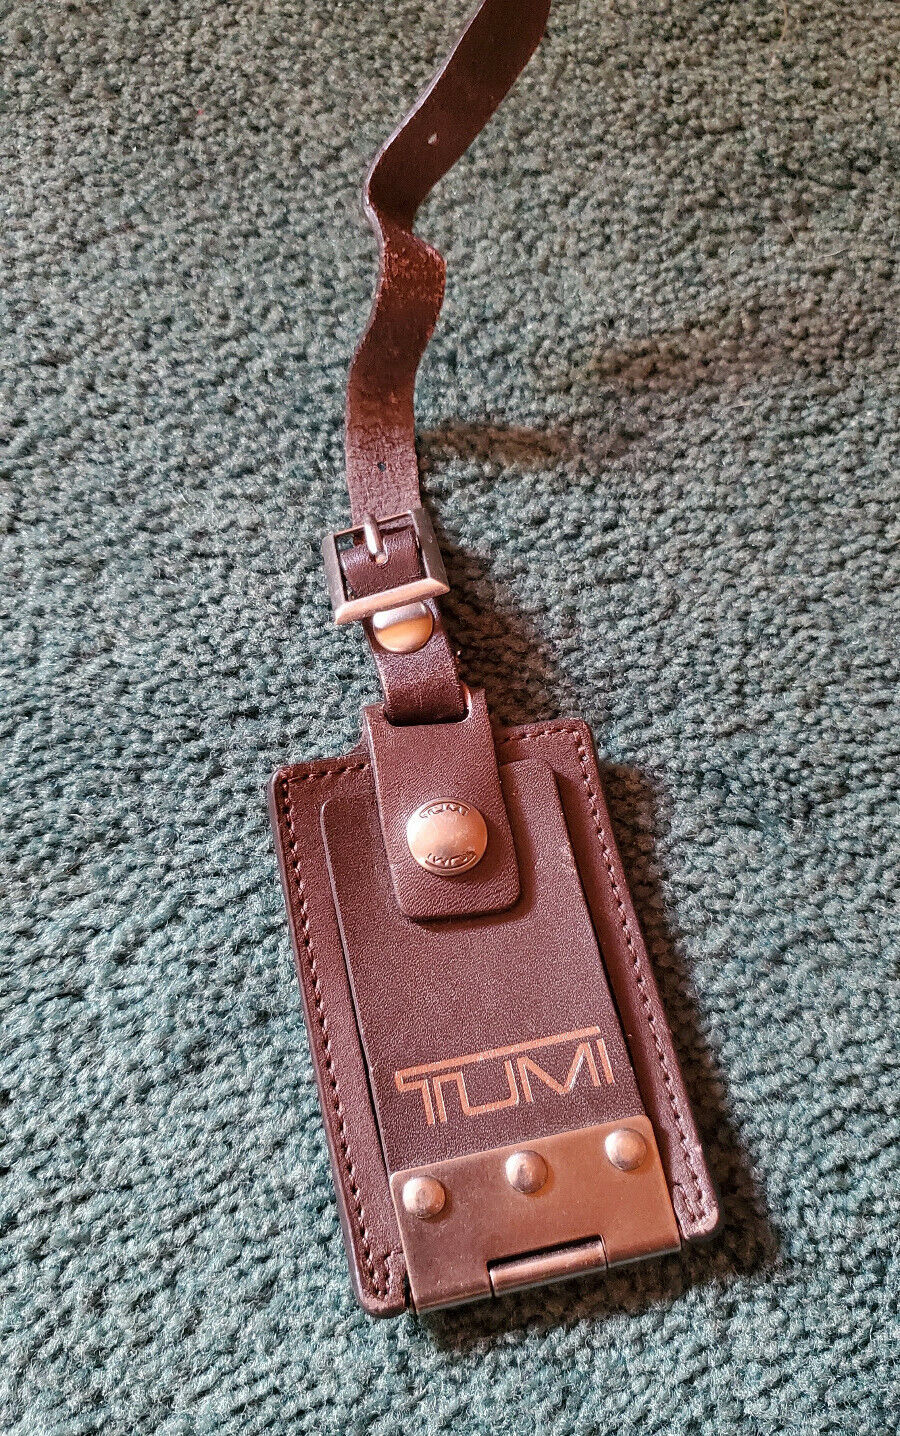 Tumi Luggage Backpack Name Tag Brown Leather - $9.99